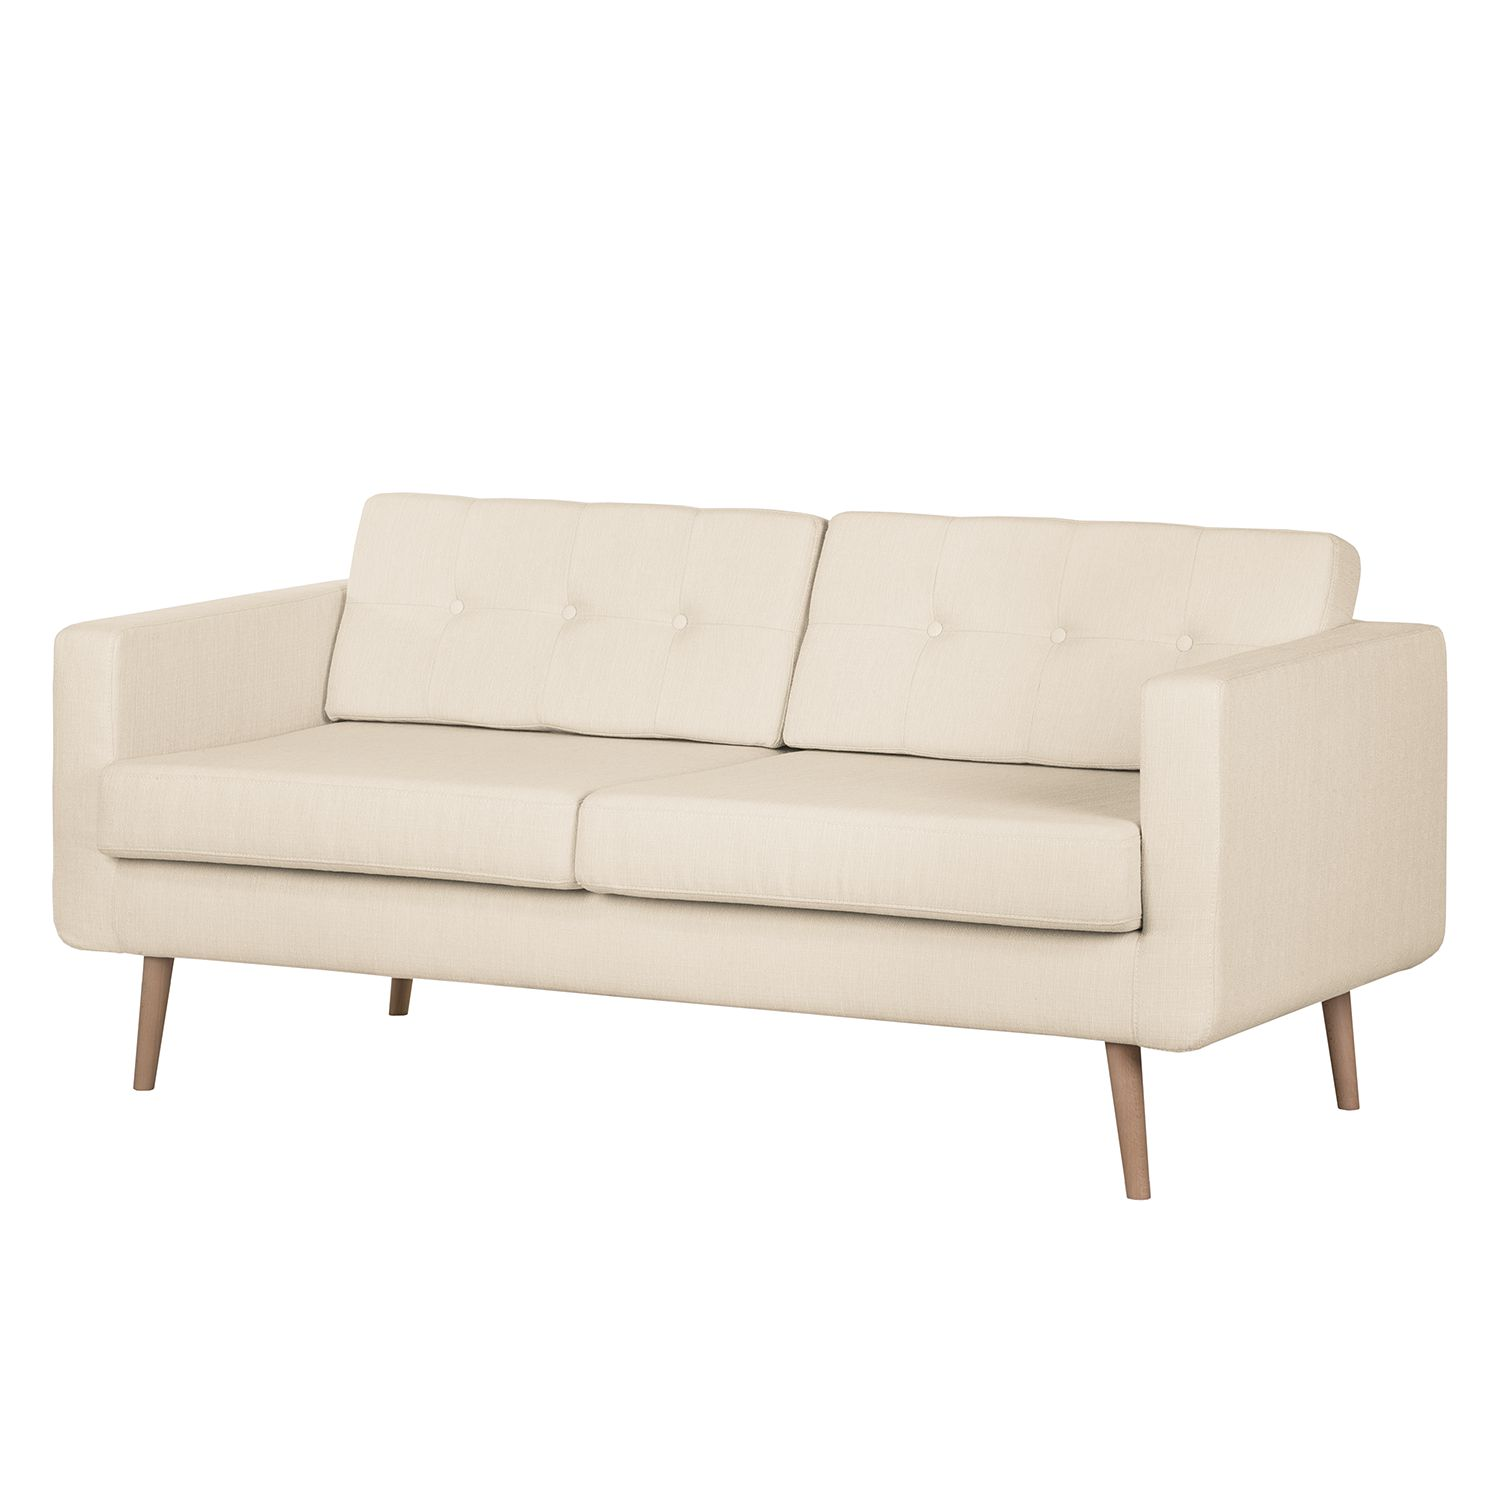 Sofa Aira II (3-Sitzer) - Webstoff - Creme, kollected by Johanna